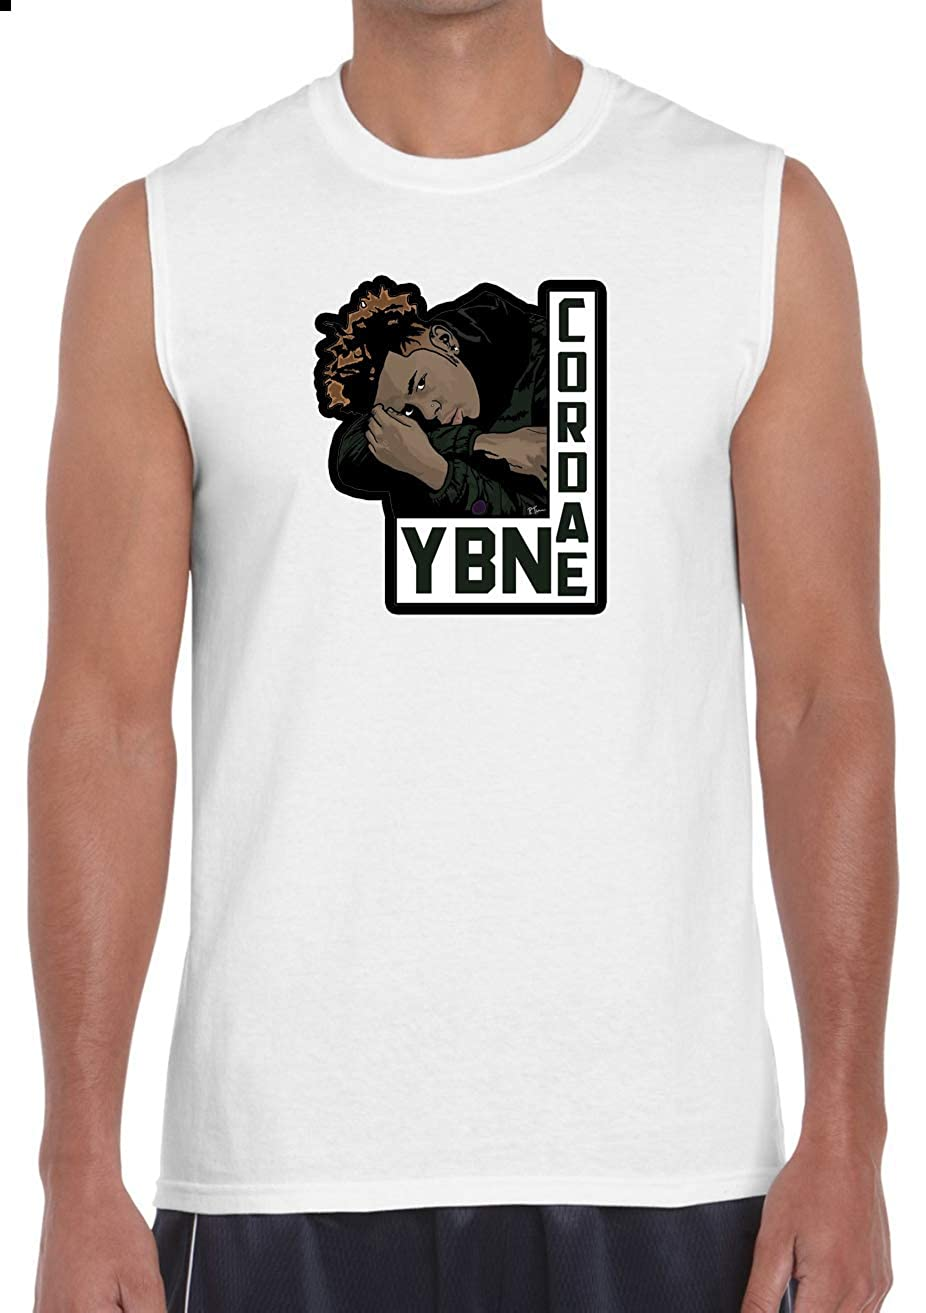 Adult YBN Cordae White Muscle T